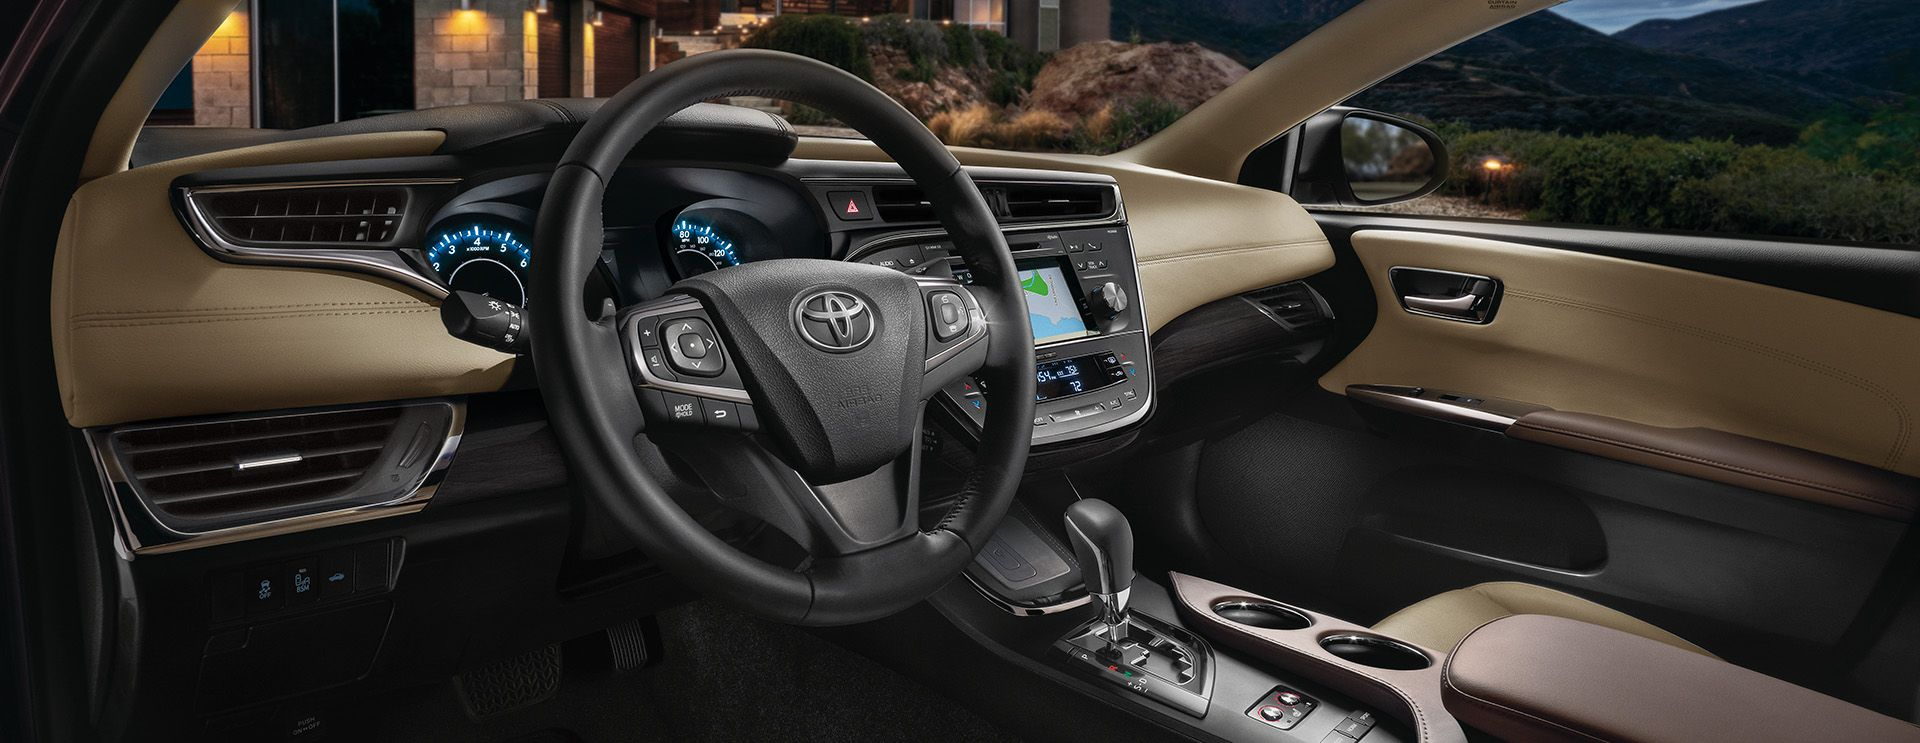 2017 Avalon Hybrid with Interior Technology